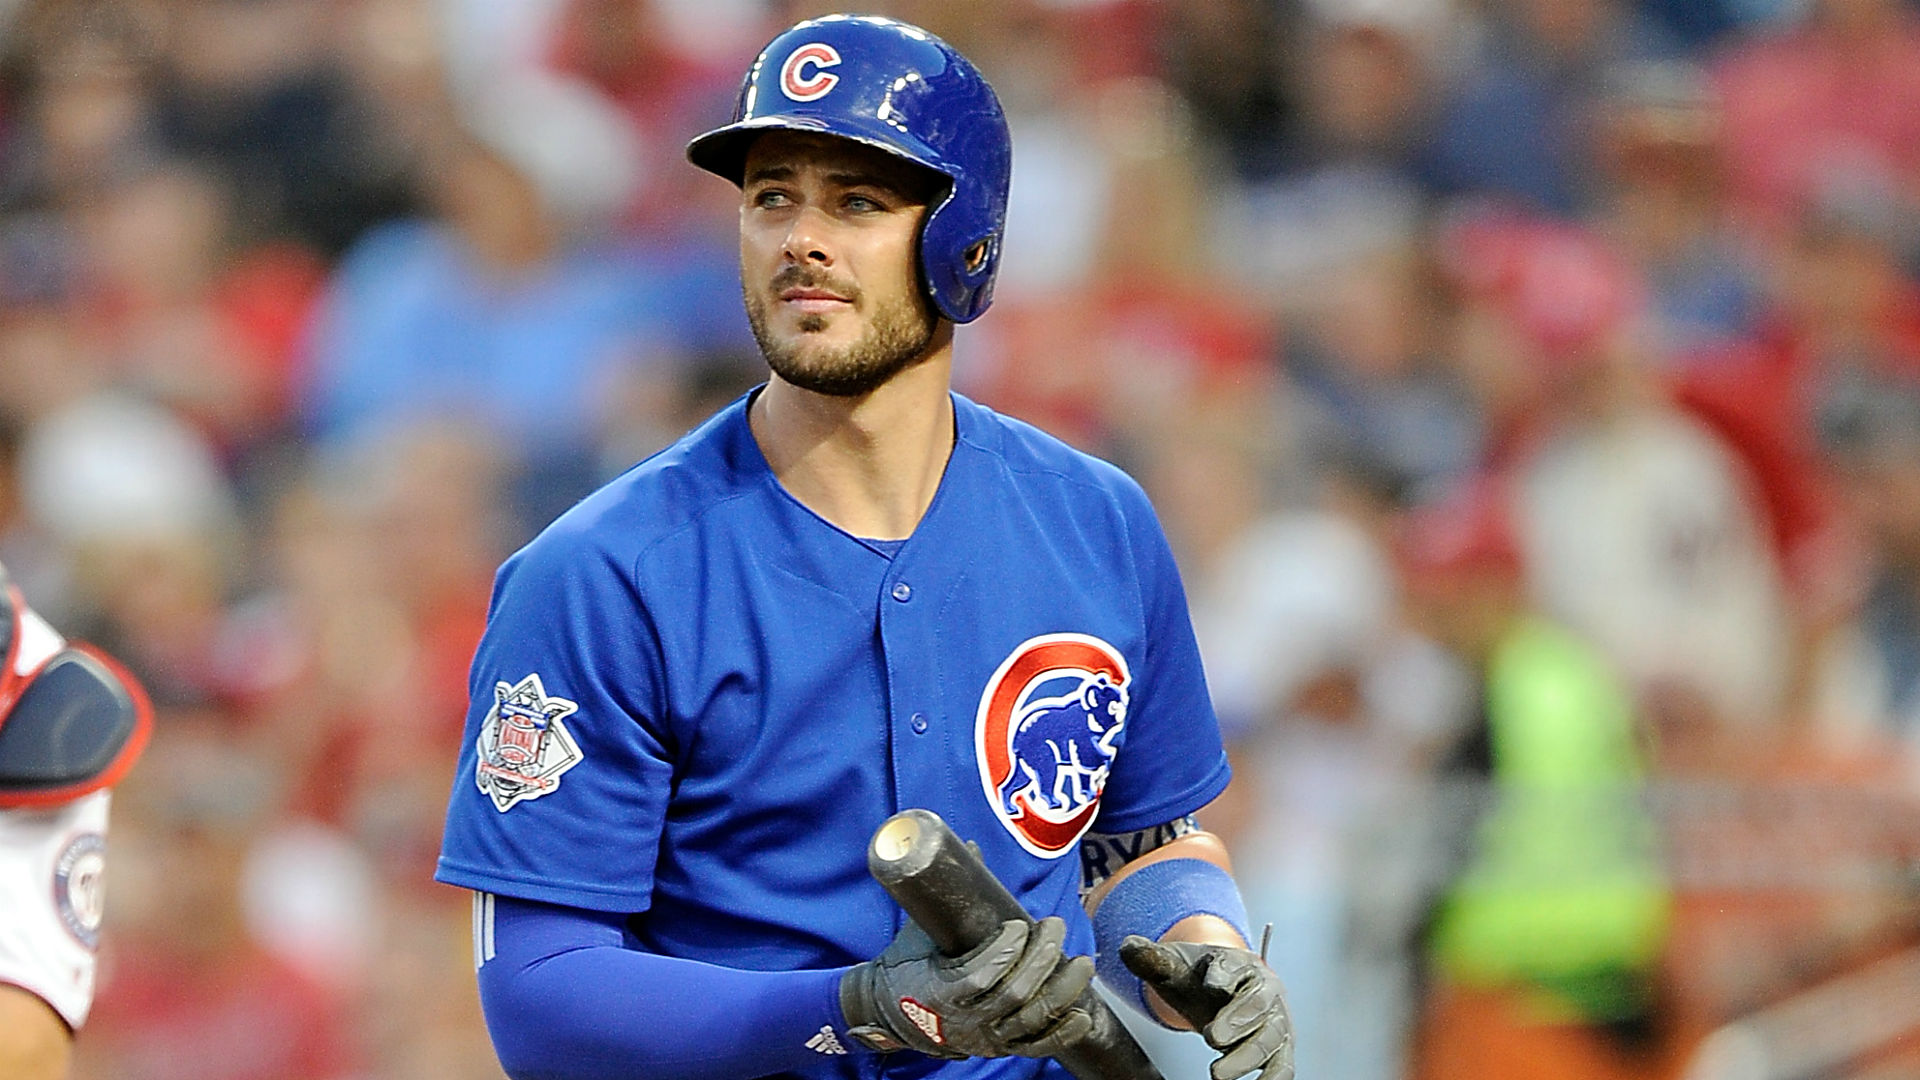 Cubs' Kris Bryant exits game vs Nationals with apparent ankle injury MLB Sporting News